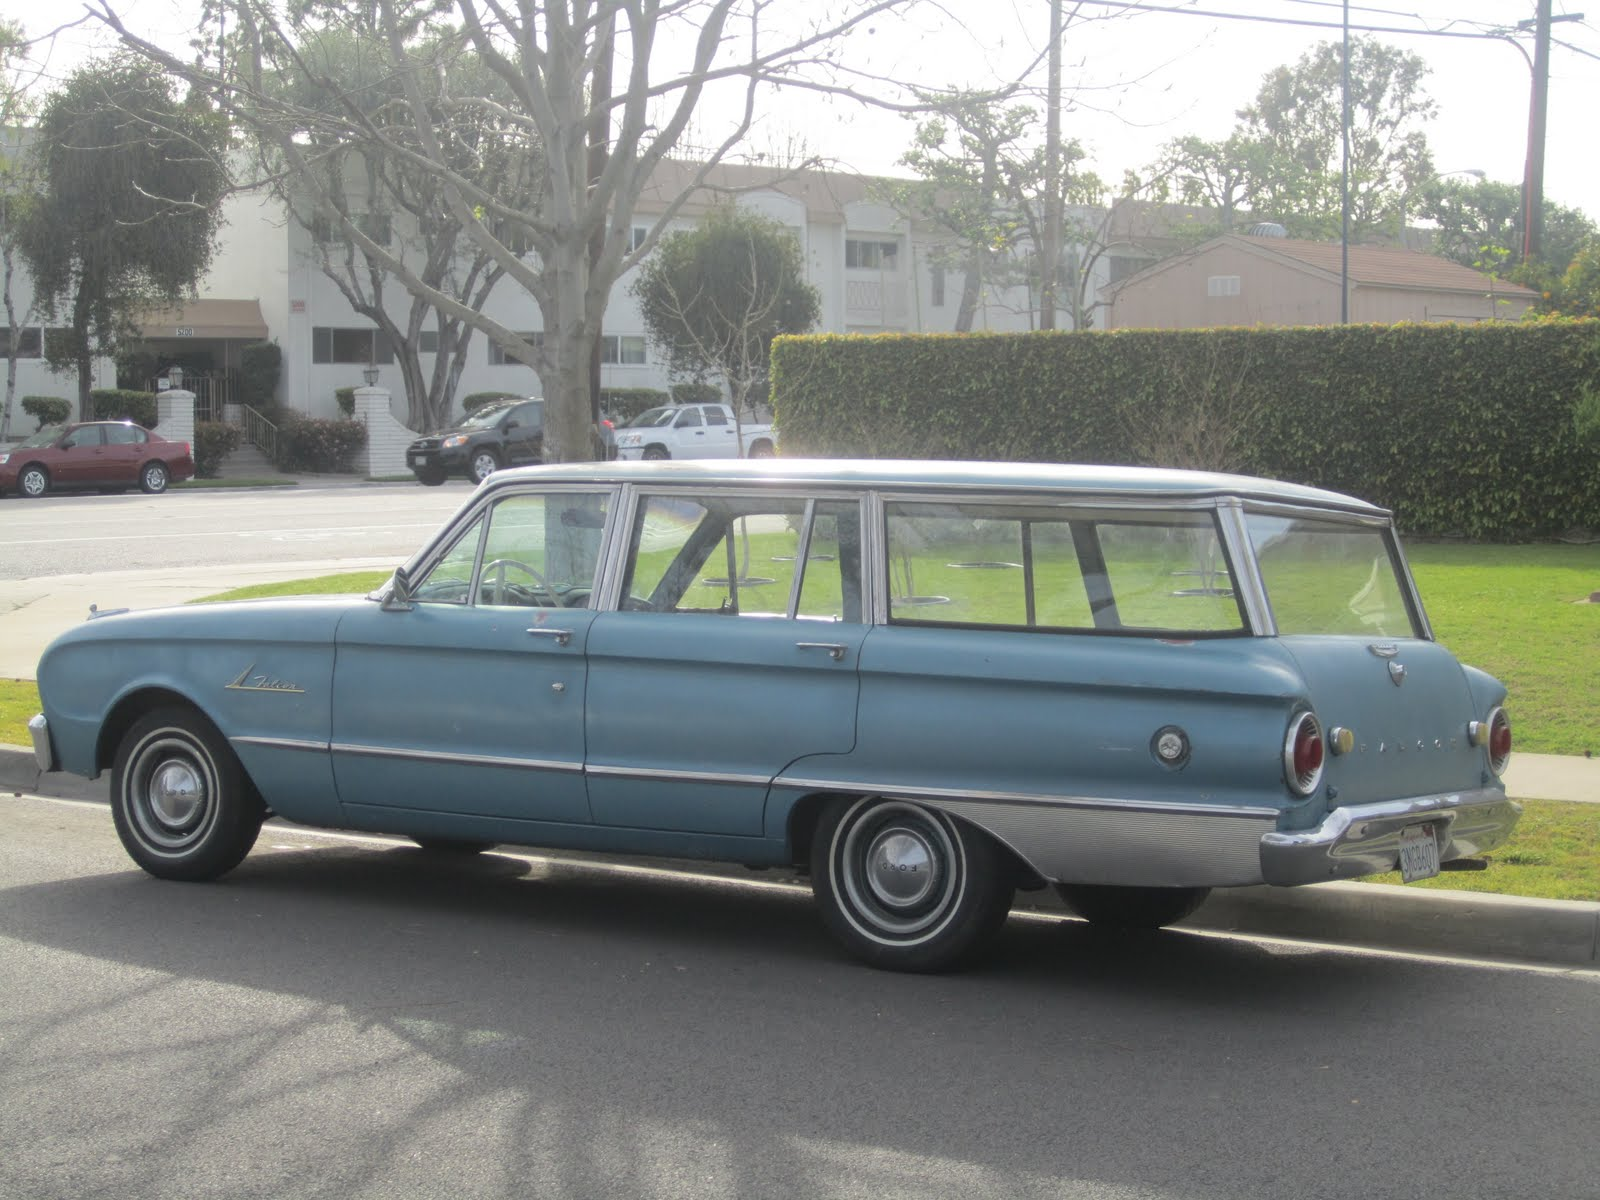 1961 Plymouth Valiant Station Wagon moreover 1962 Ford Falcon Station Wagon besides 1978 Ford Ranchero further Fases De La Luna as well 1962 Dodge Dart. on 1962 ford falcon